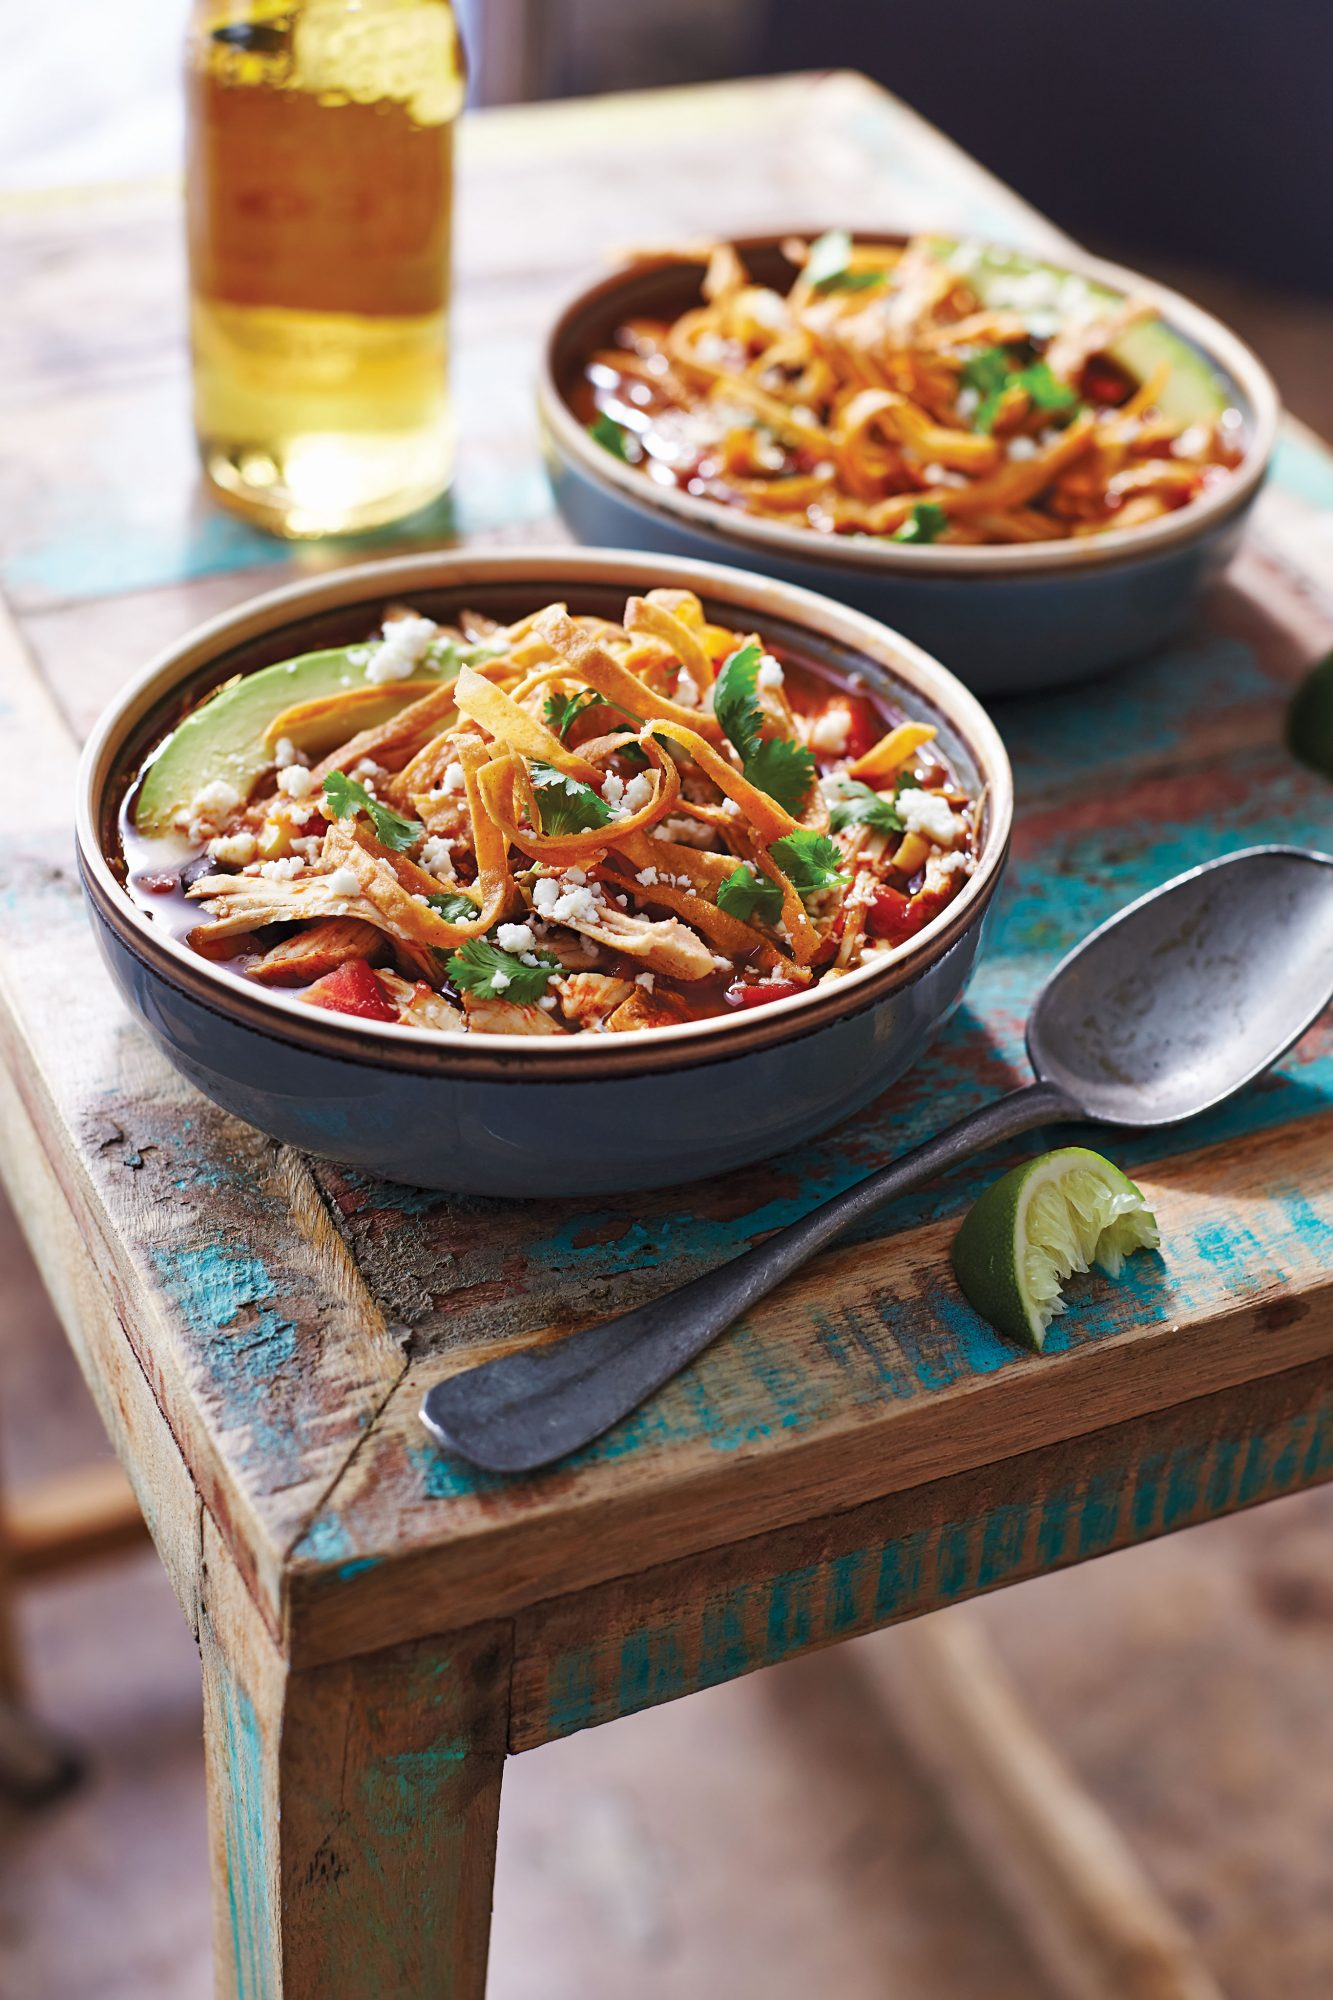 Smoked chicken tortilla soup recipe southern living smoked chicken tortilla soup recipe forumfinder Images